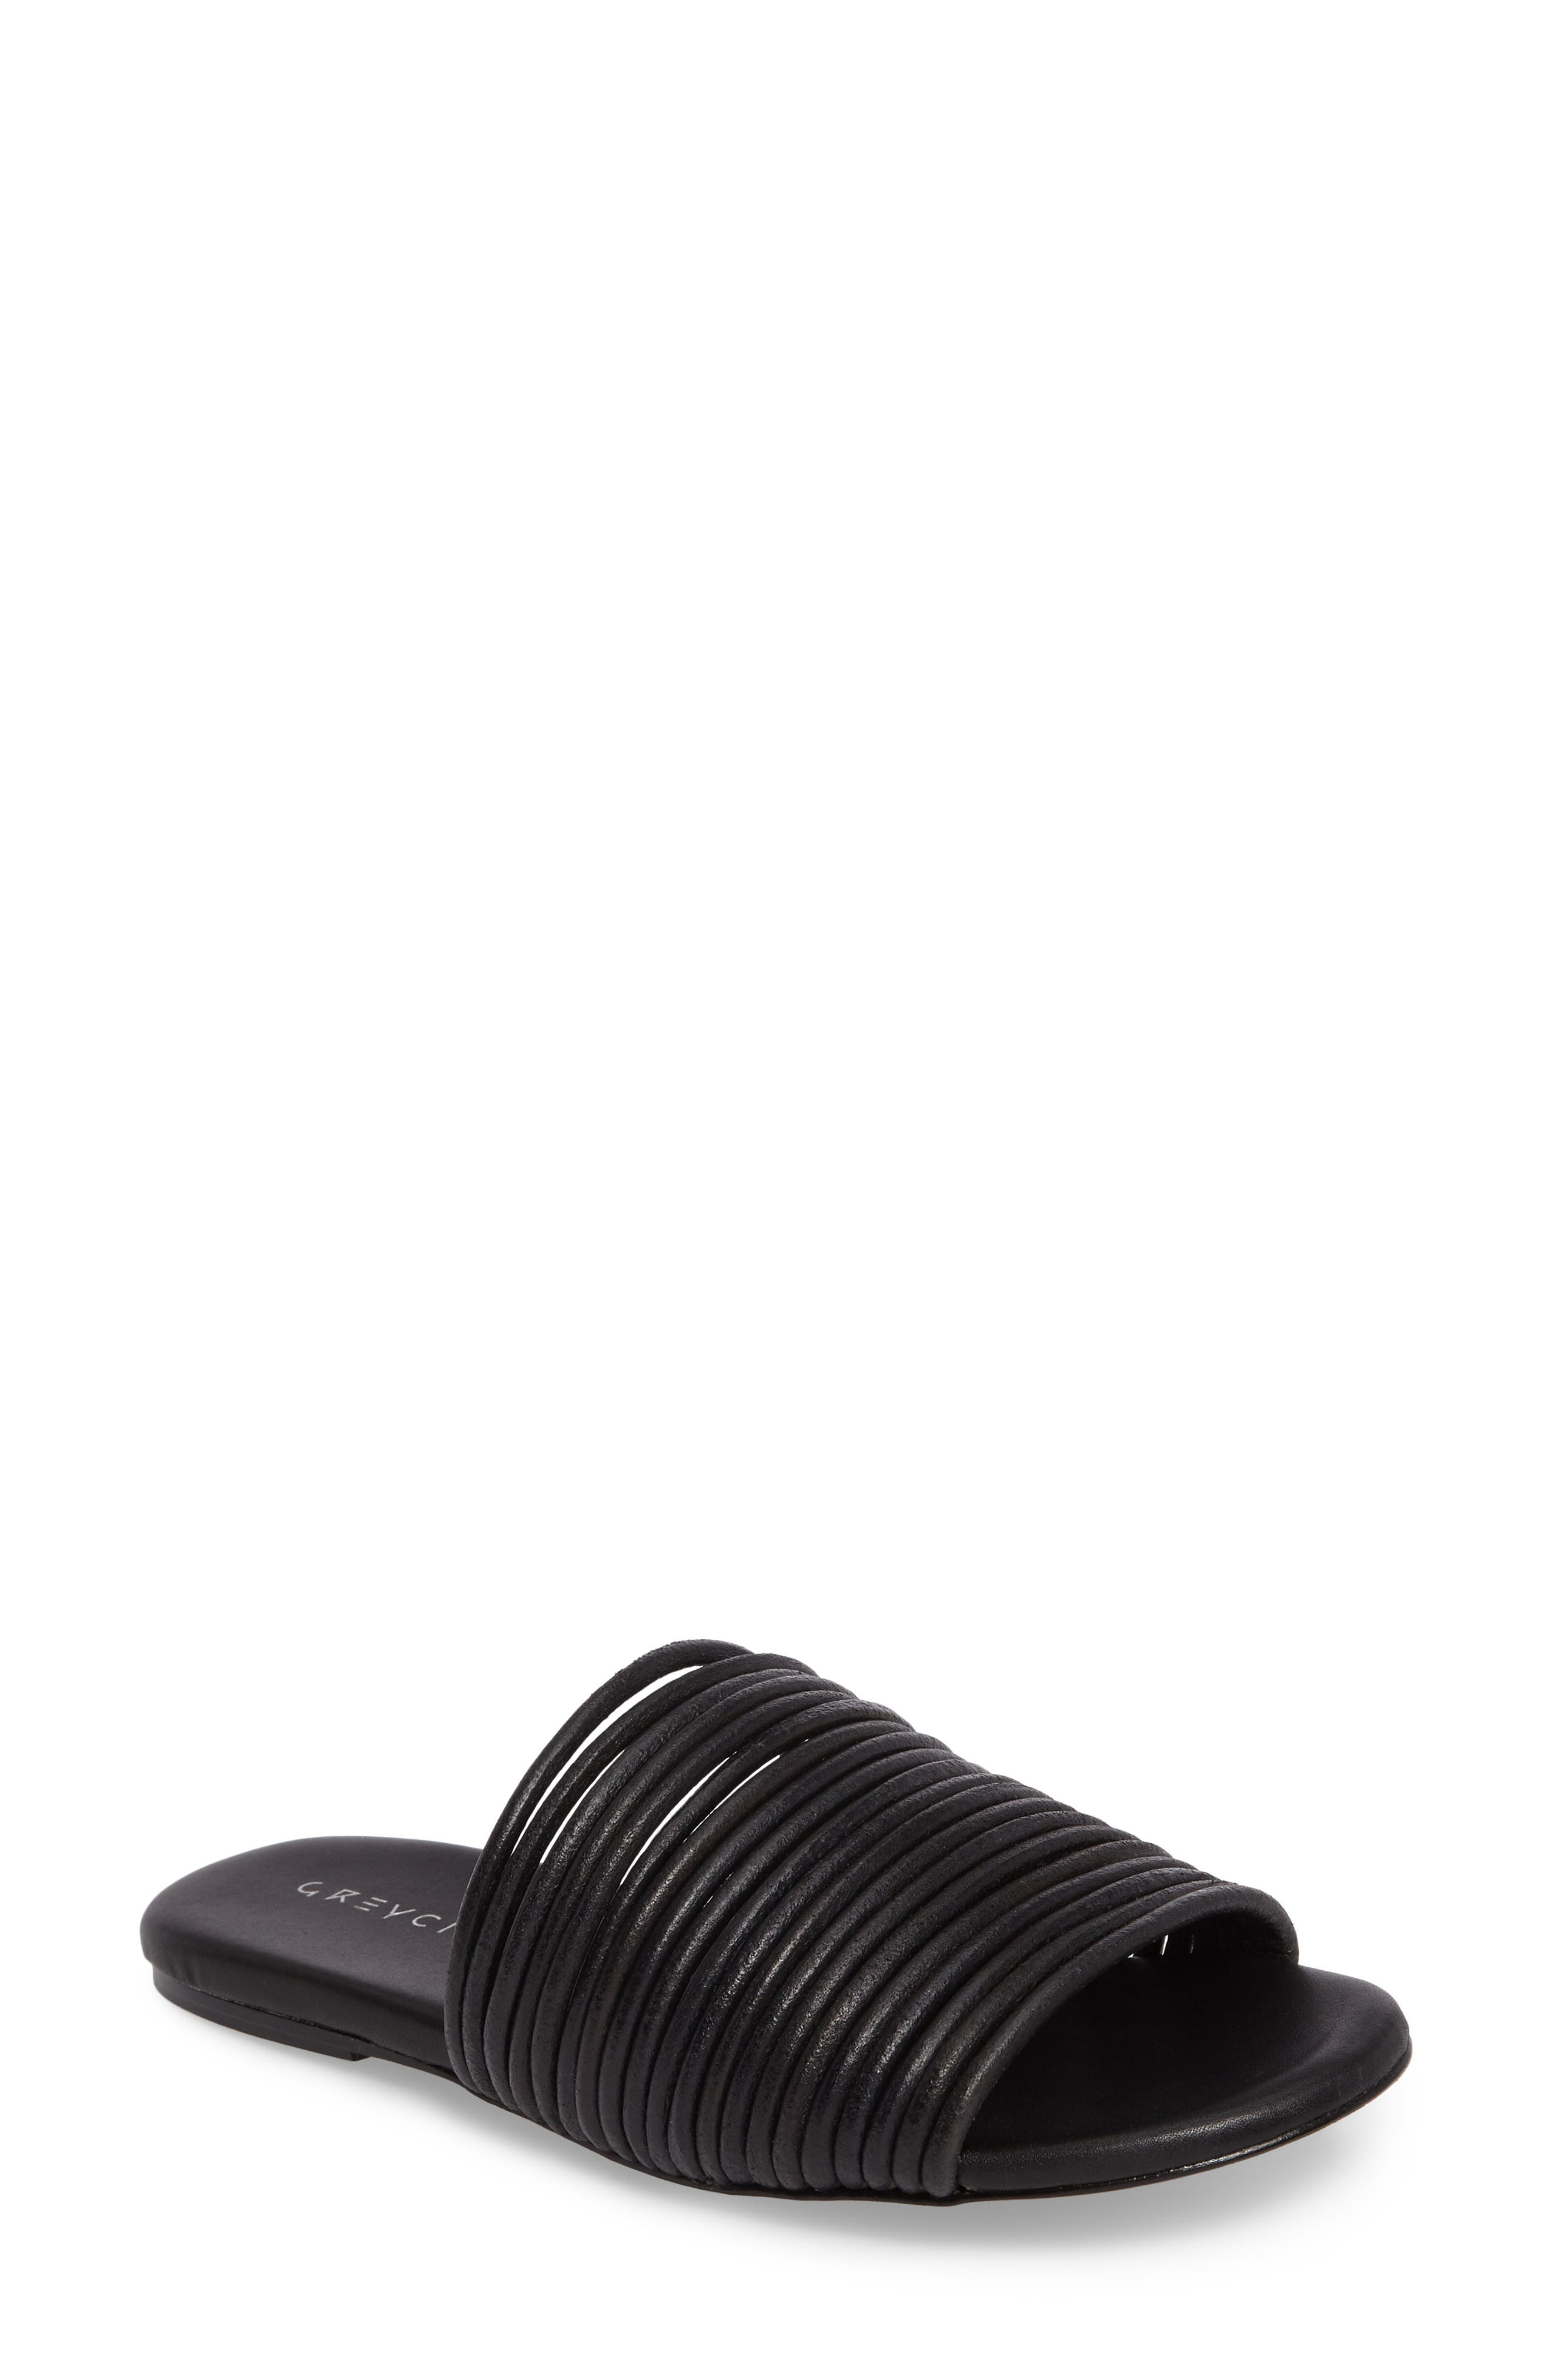 Nikki Corded Slide Sandal,                         Main,                         color, Black